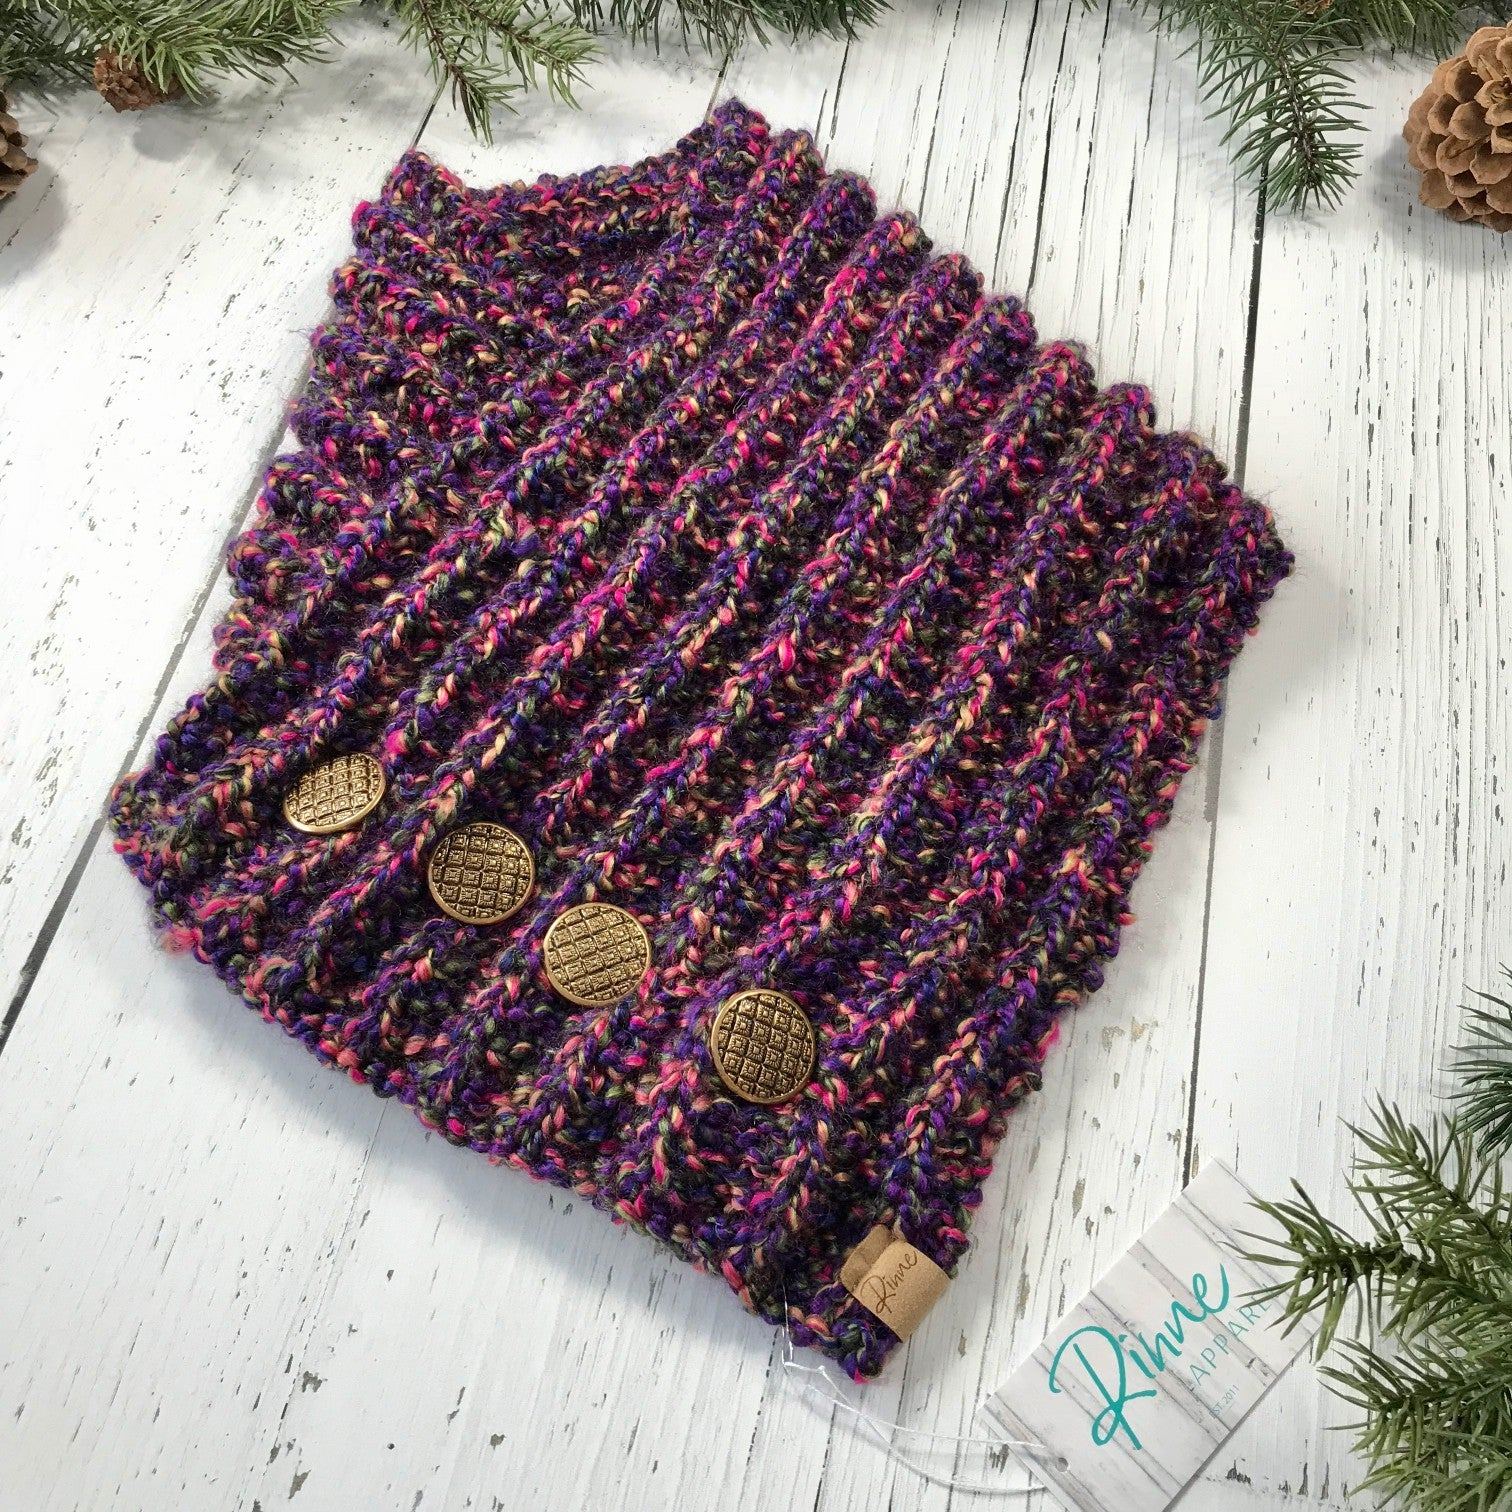 Classic Knit Button Cowl in pink, purple, olive green, and yellow with vintage gold buttons